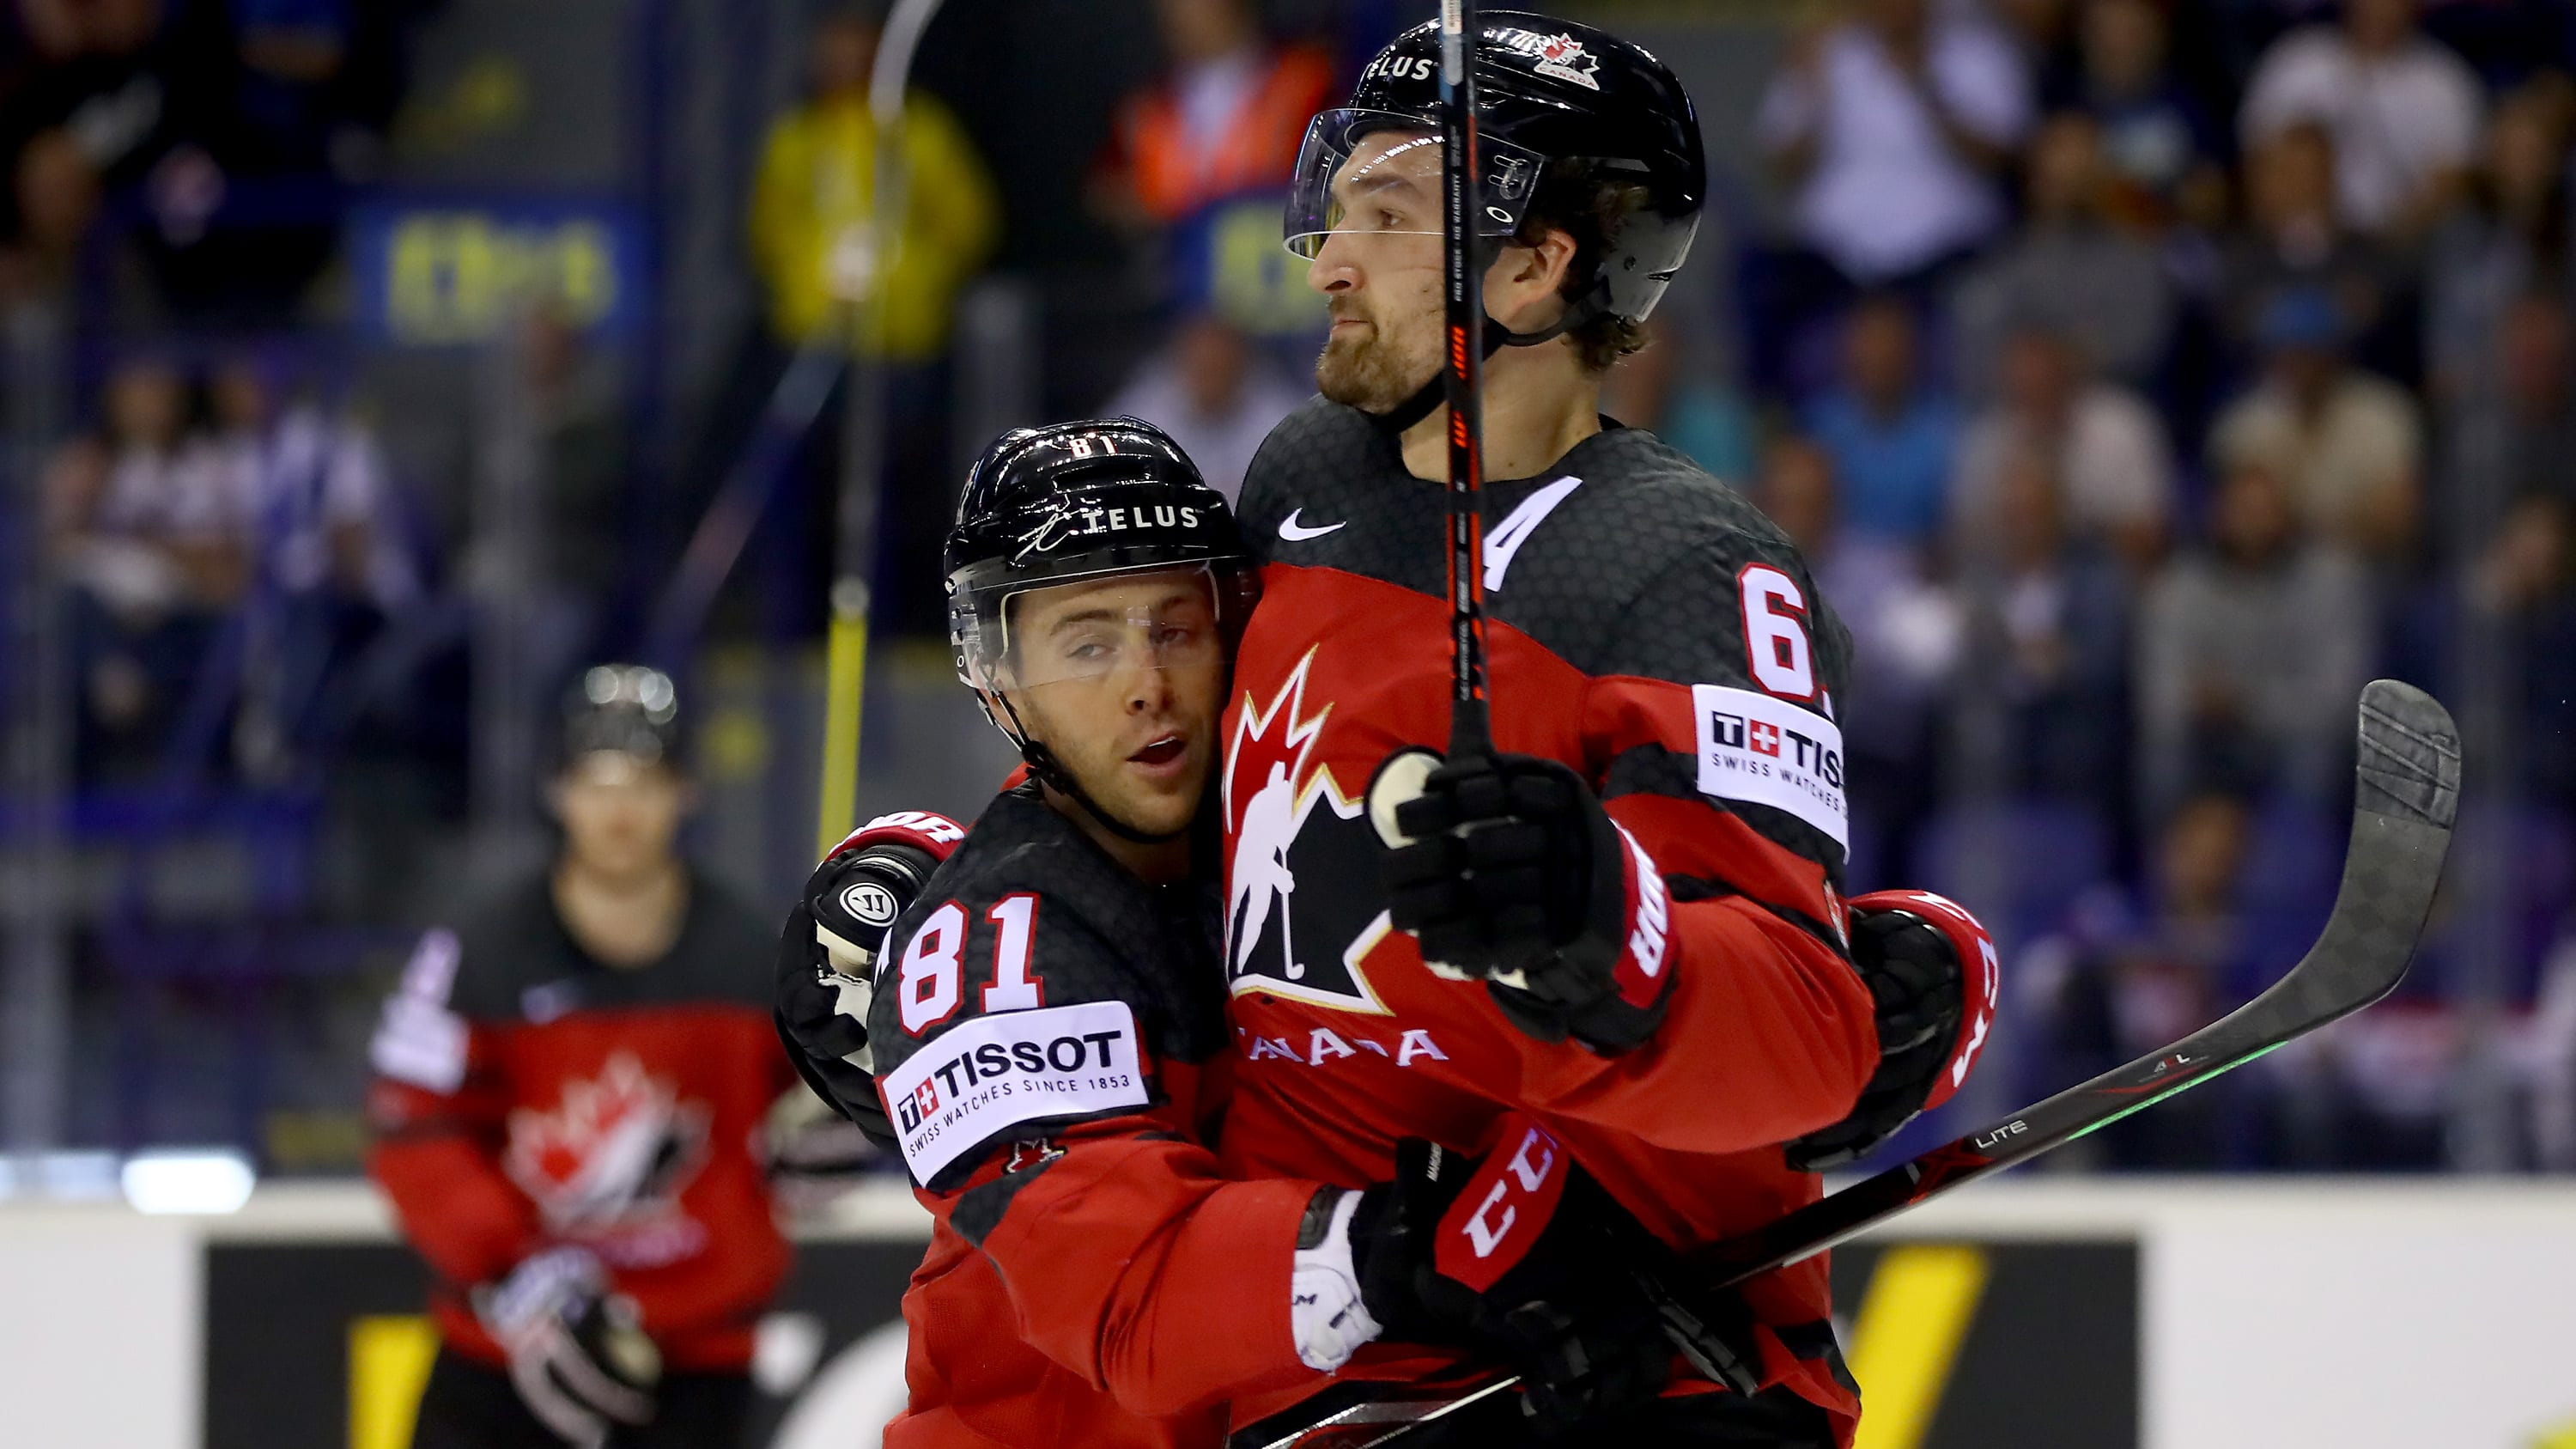 KOSICE, SLOVAKIA - MAY 18: Mark Stone #61 Canada clebrate with team mate Jonathan Marchessault #81 after he scores the 2nd goal during the 2019 IIHF Ice Hockey World Championship Slovakia group A game between Canada and Germany at Steel Arena on May 18, 2019 in Kosice, Slovakia. (Photo by Martin Rose/Getty Images)